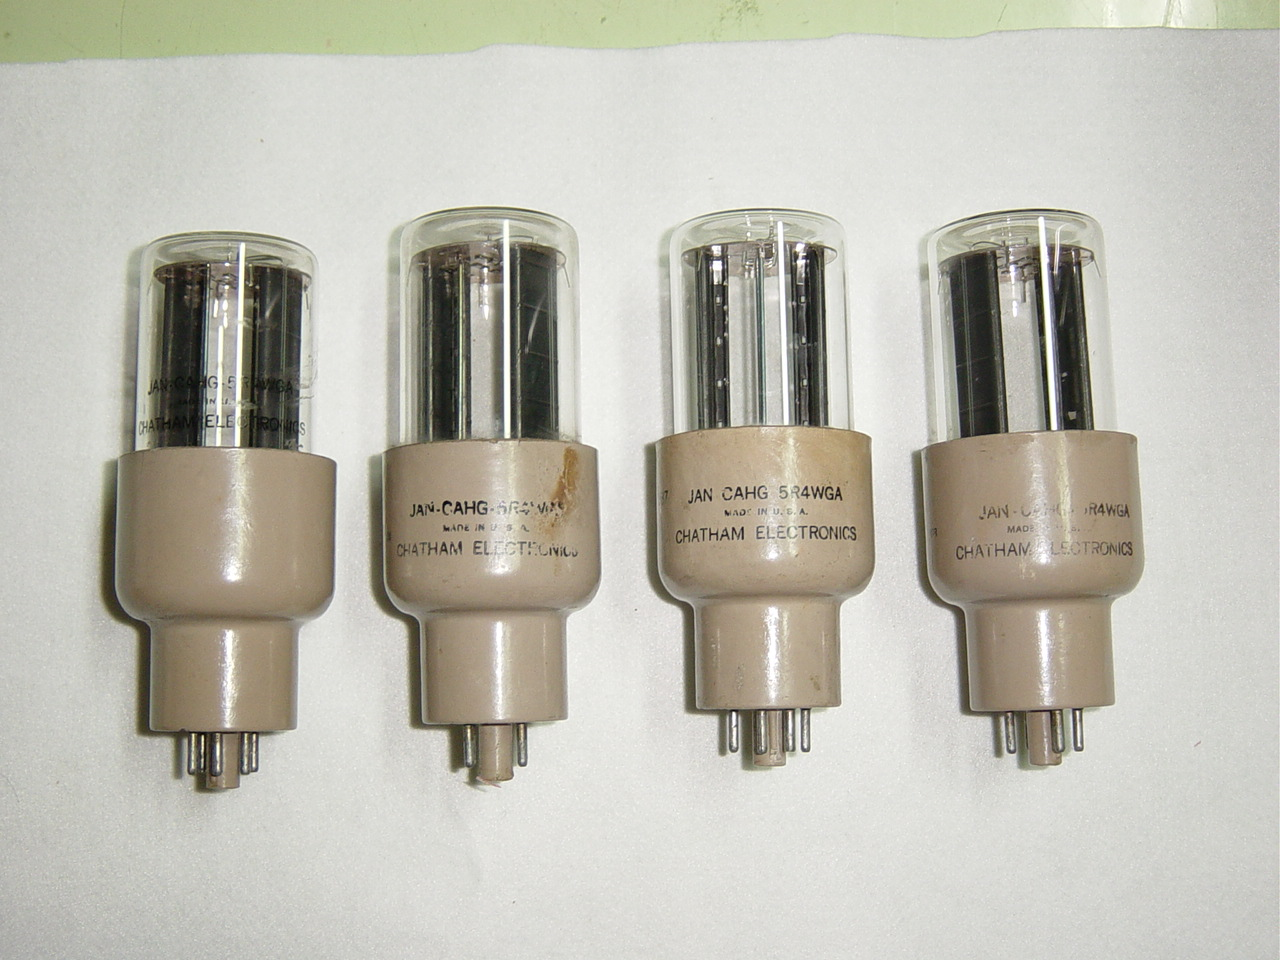 Liens moreover File Selenium rectifier agr additionally 5u4gb likewise Liens moreover 5R4WGA. on rectifier